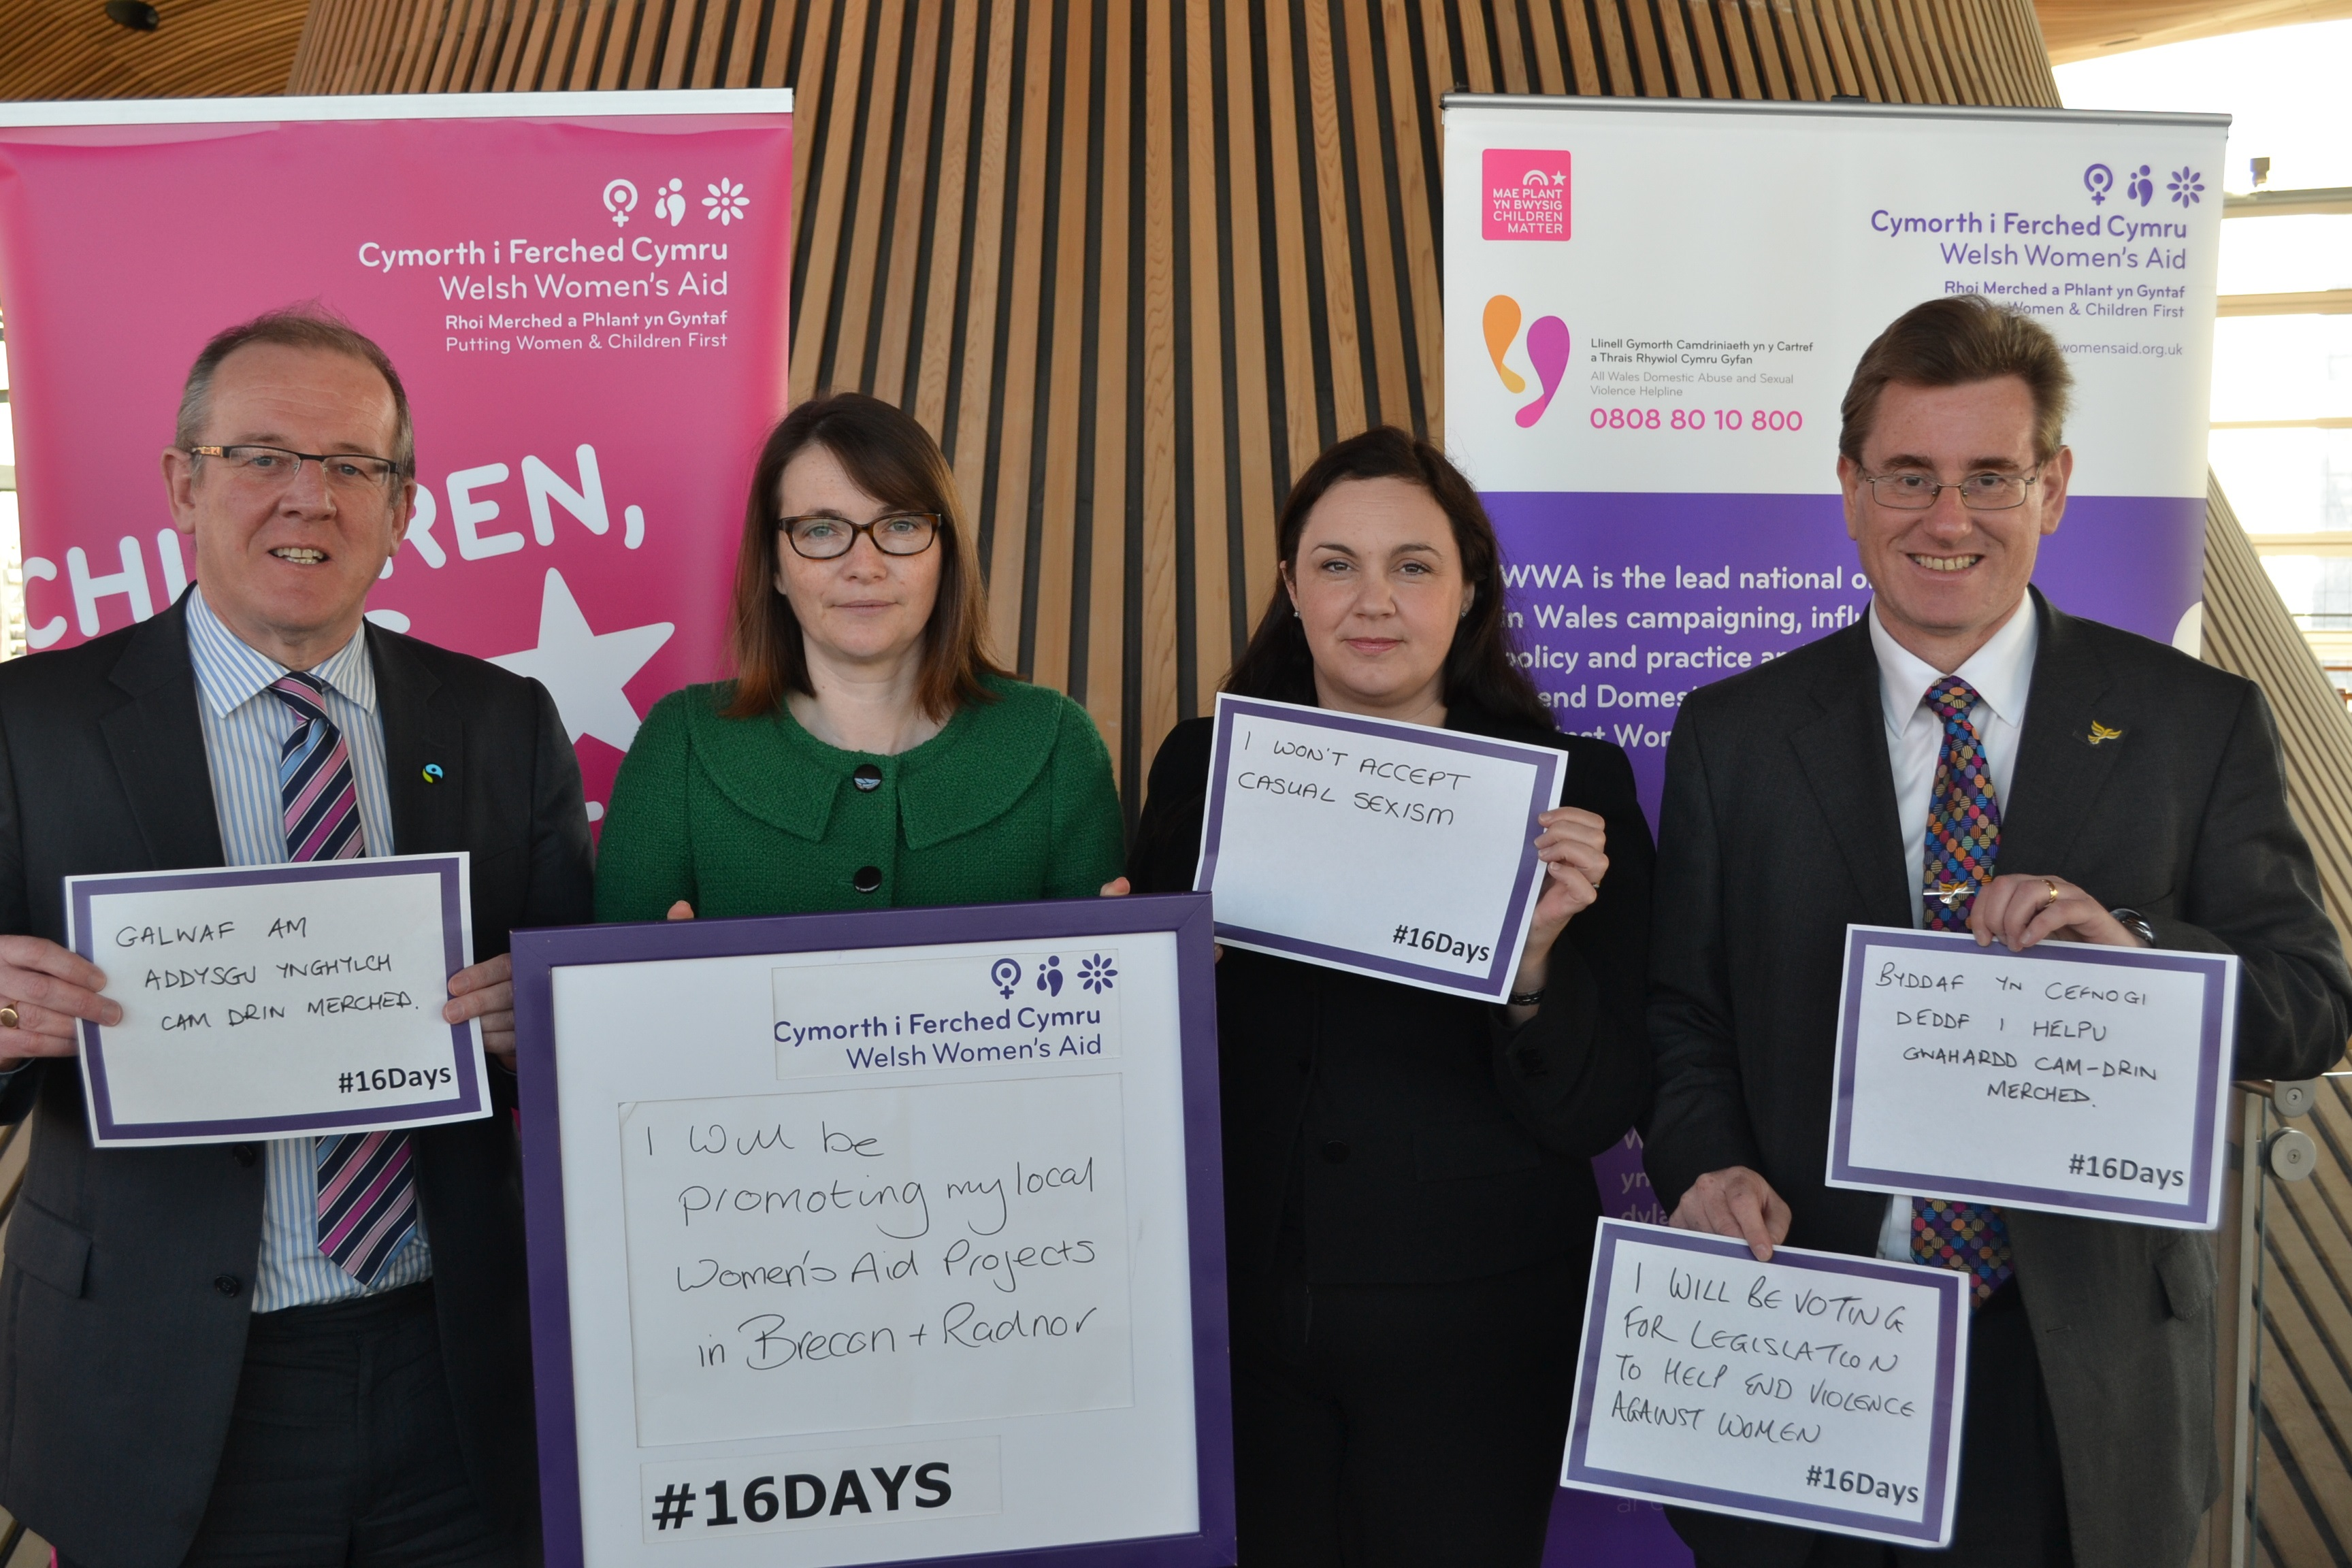 Welsh Liberal Democrats speak out to eliminate violence against women